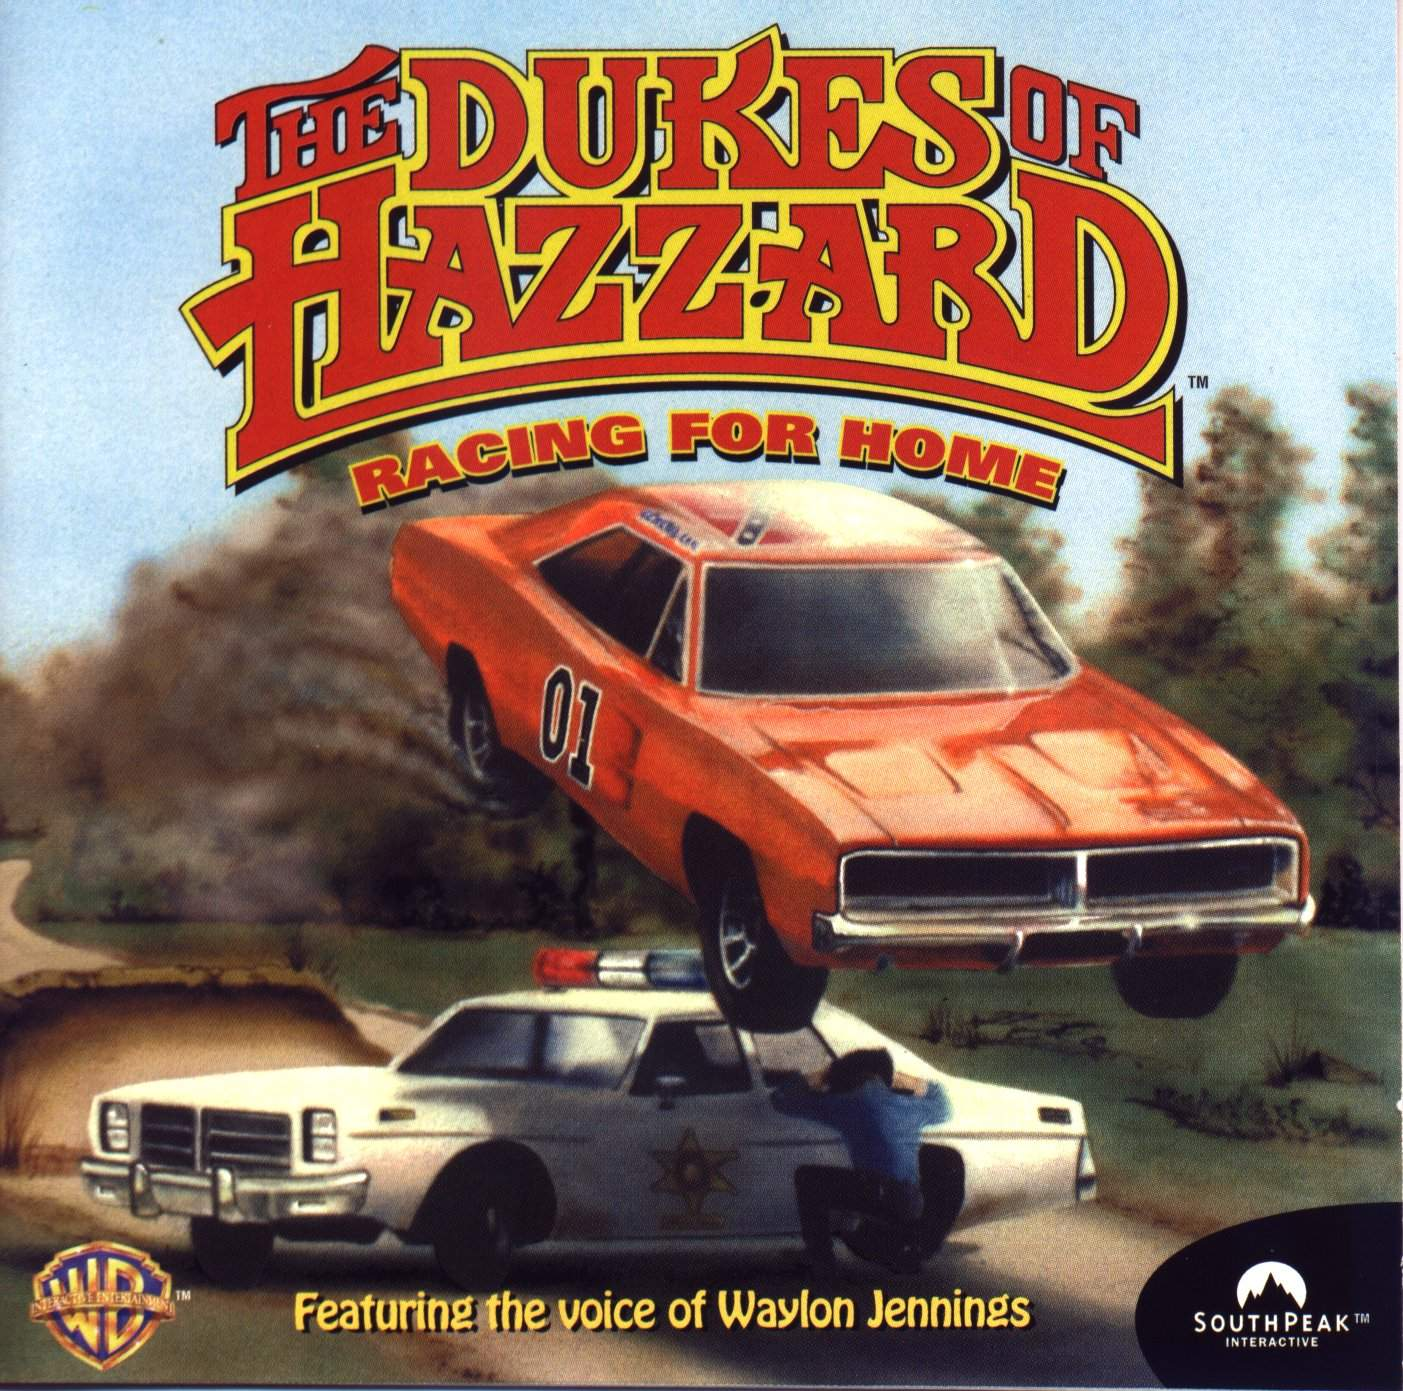 Free Download 1600x1200px 842895 Dukes Of Hazzard 69694 Kb 2206